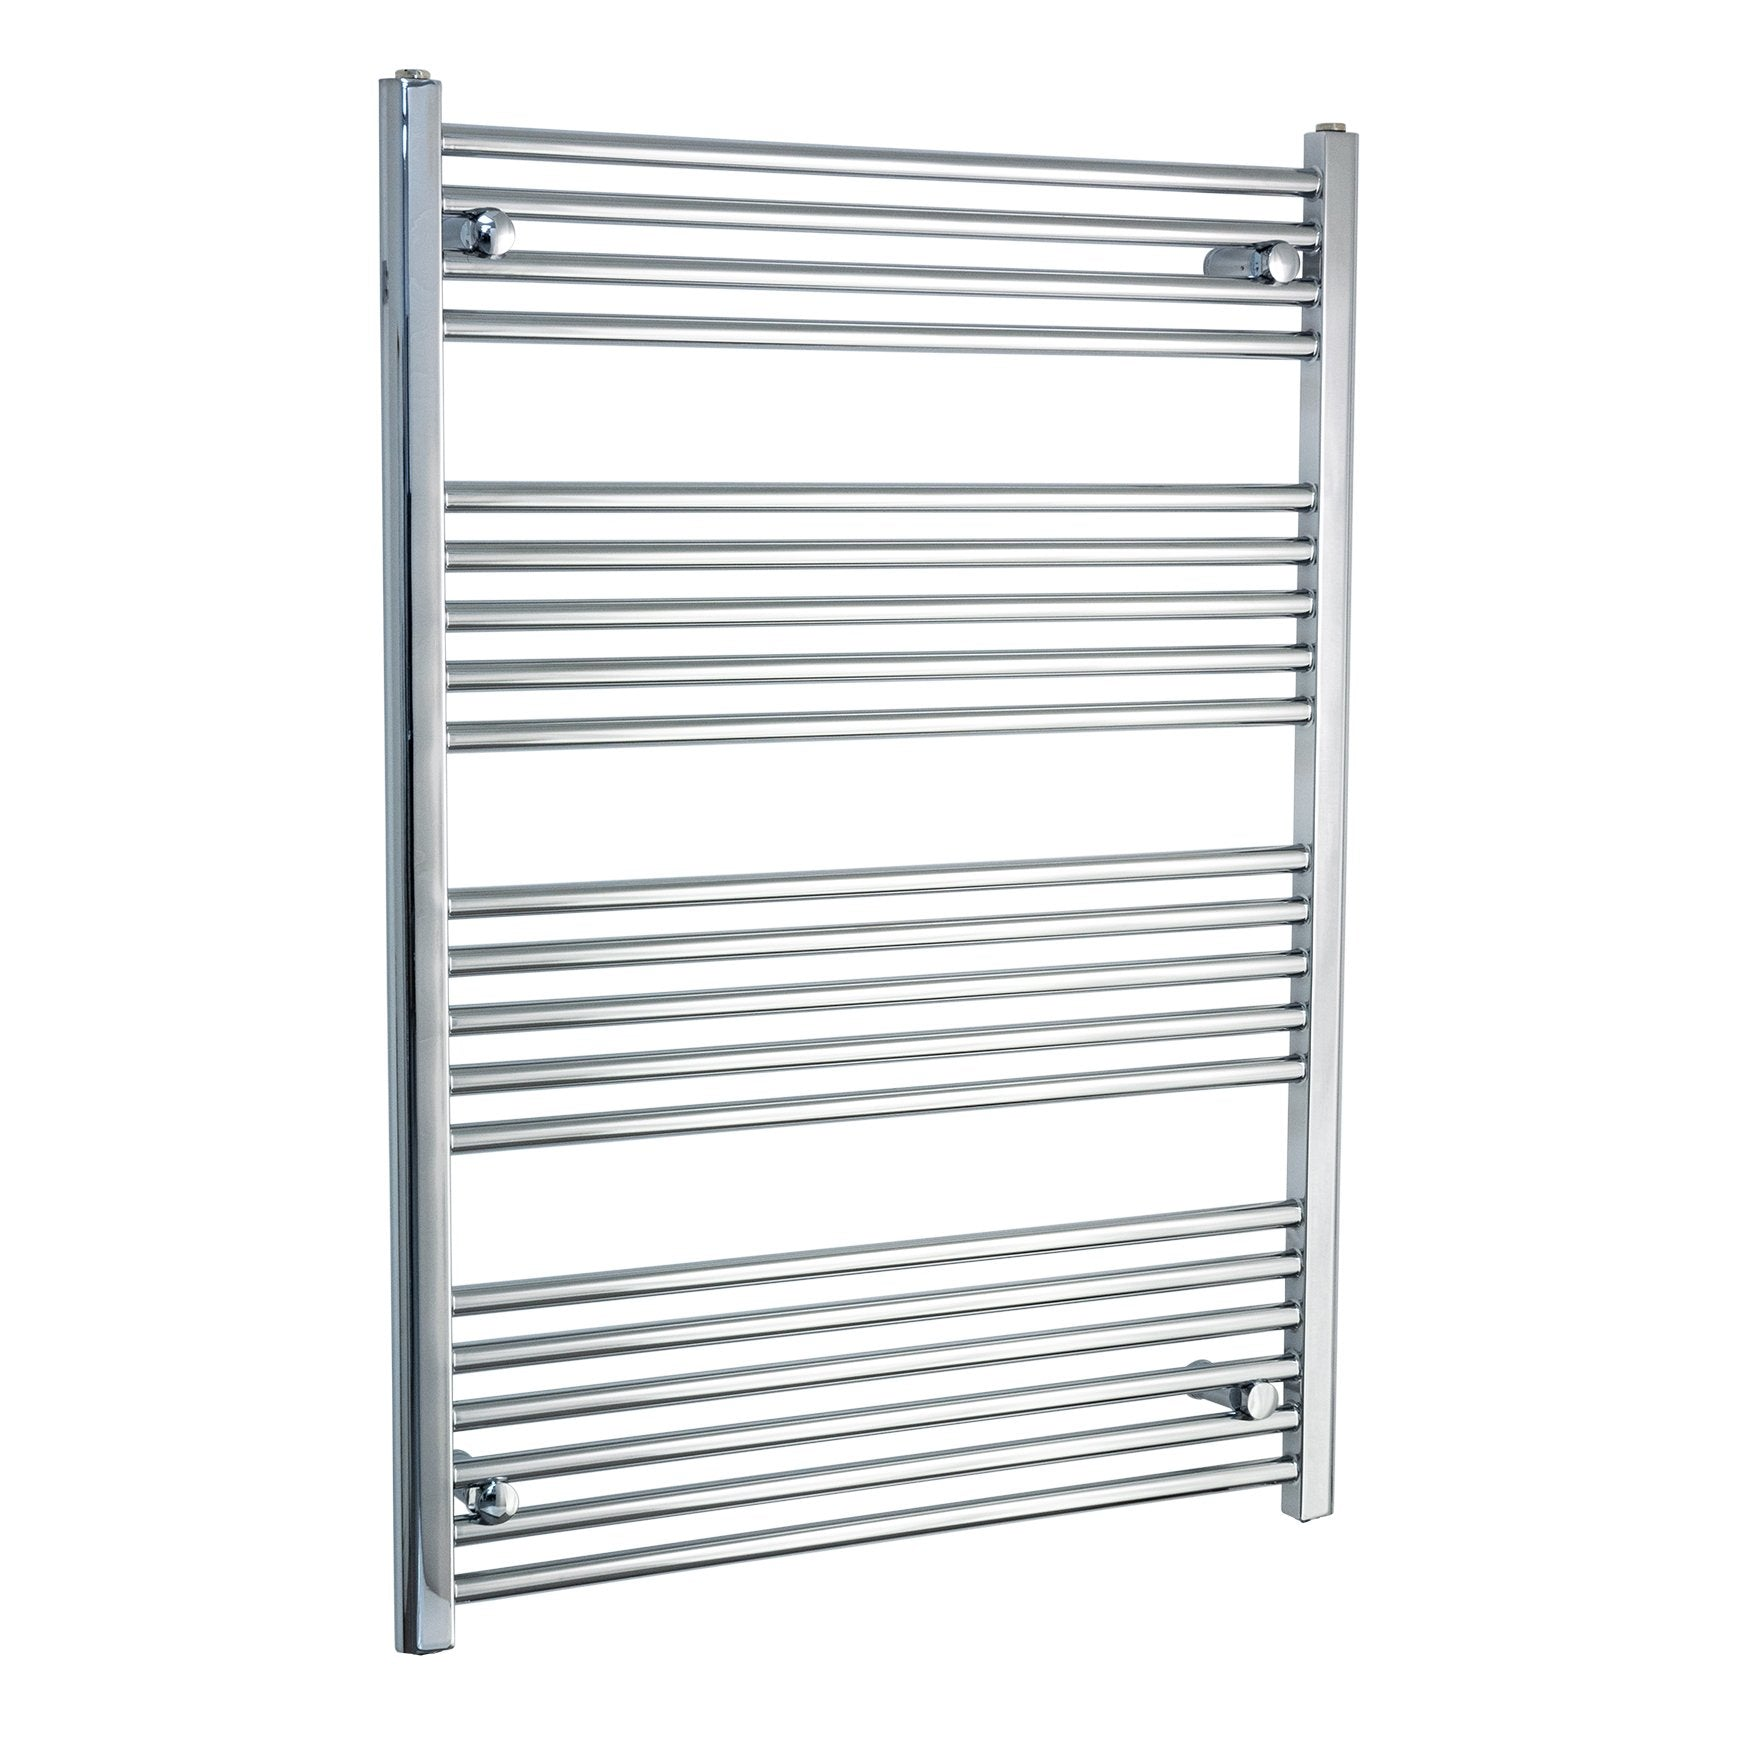 750mm Wide 1100mm High Flat Chrome Heated Towel Rail Radiator HTR,Towel Rail Only